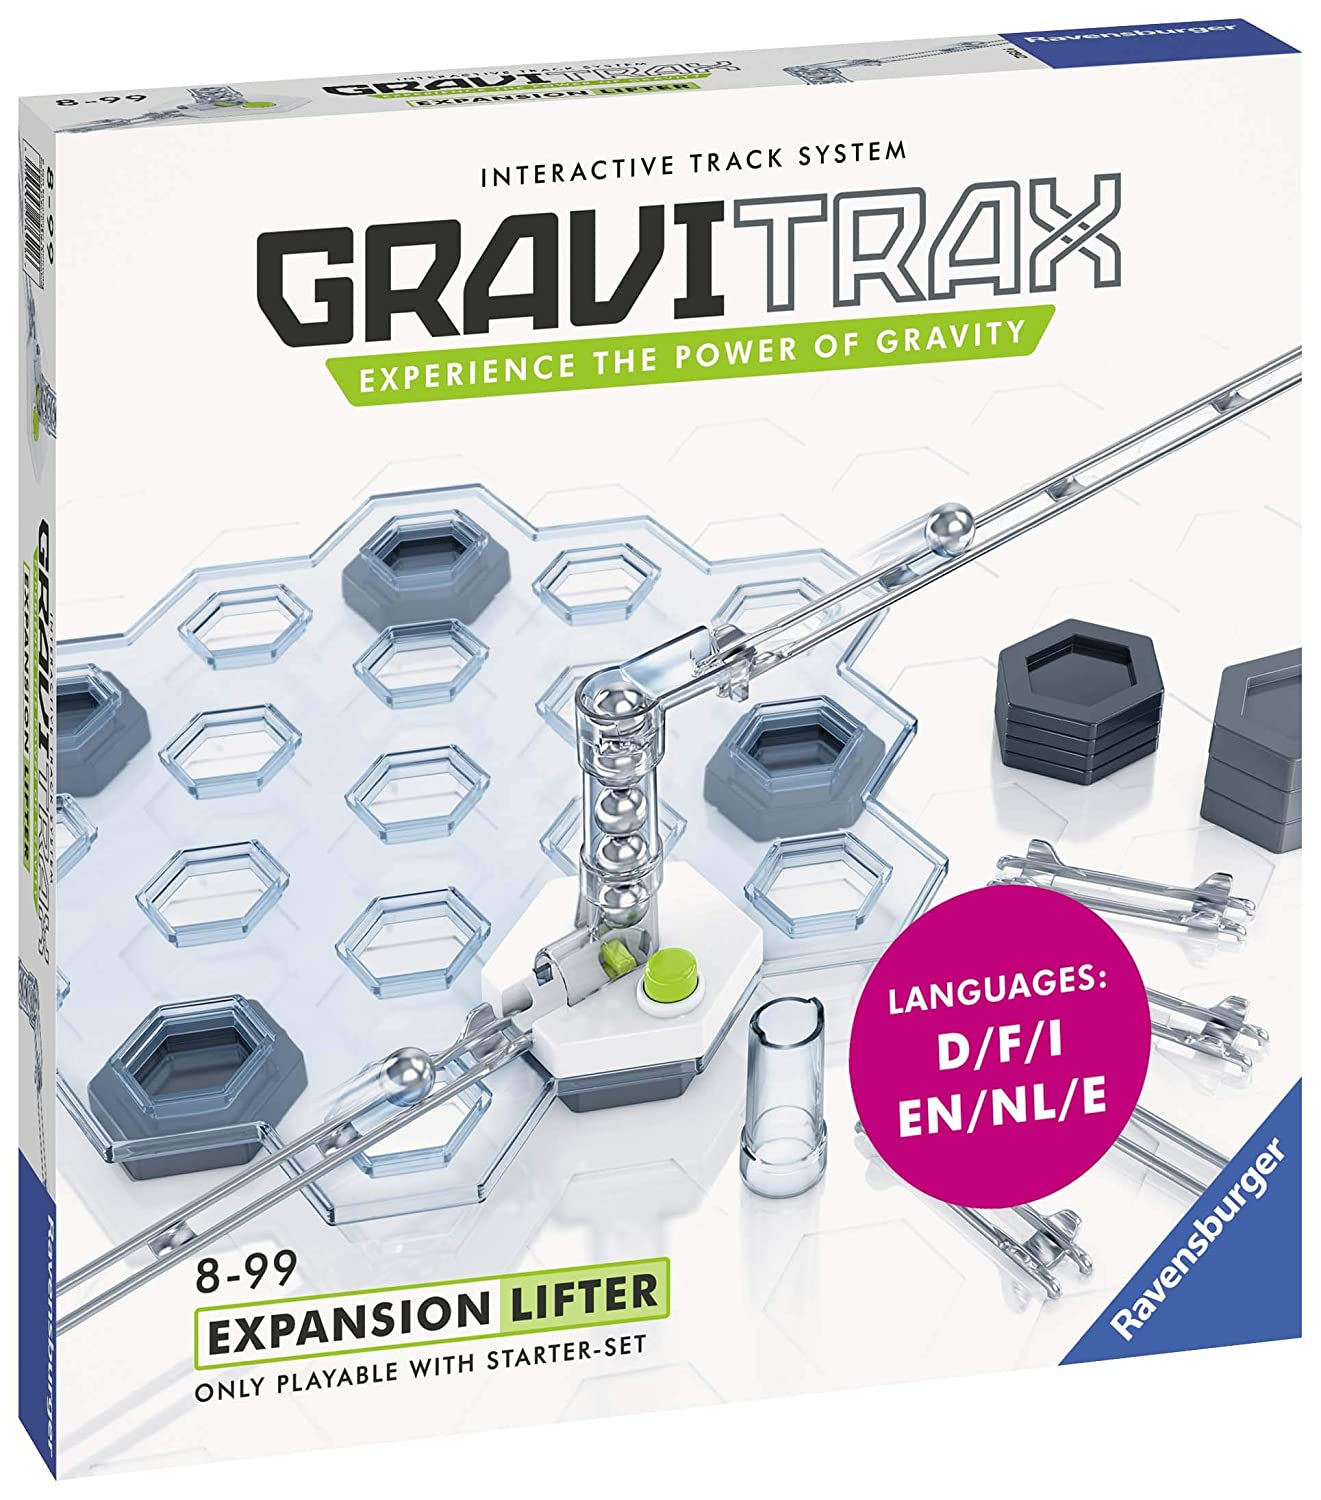 Expansion for 2019 Toy of The Year Finalist Gravitrax Ravensburger Gravitrax Lifter Expansion Set Marble Run /& STEM Toy for Boys /& Girls Age 8 /& Up